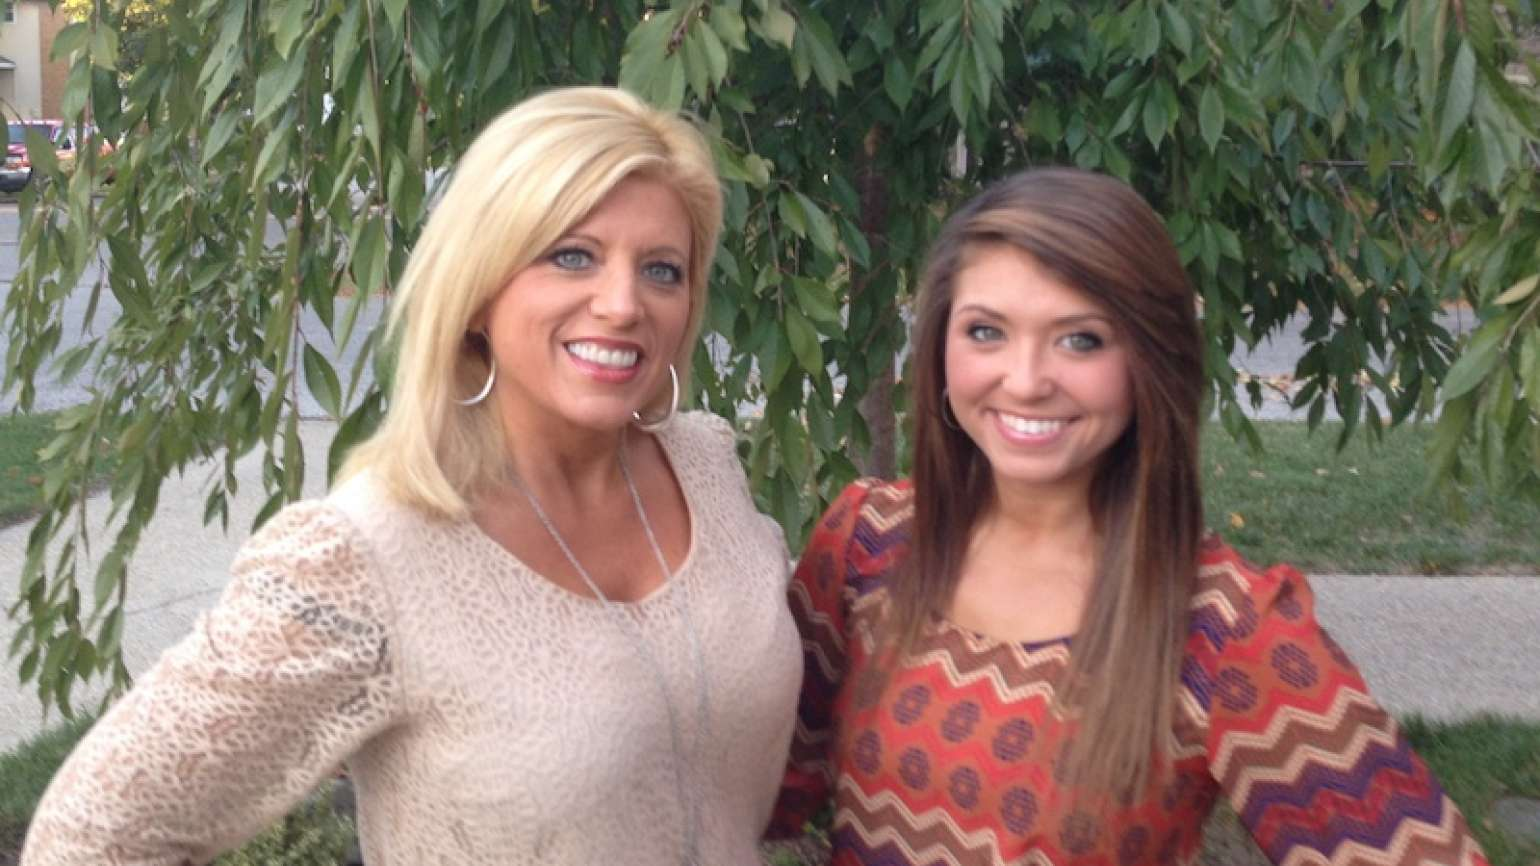 Michelle and her adored daughter, Abby.